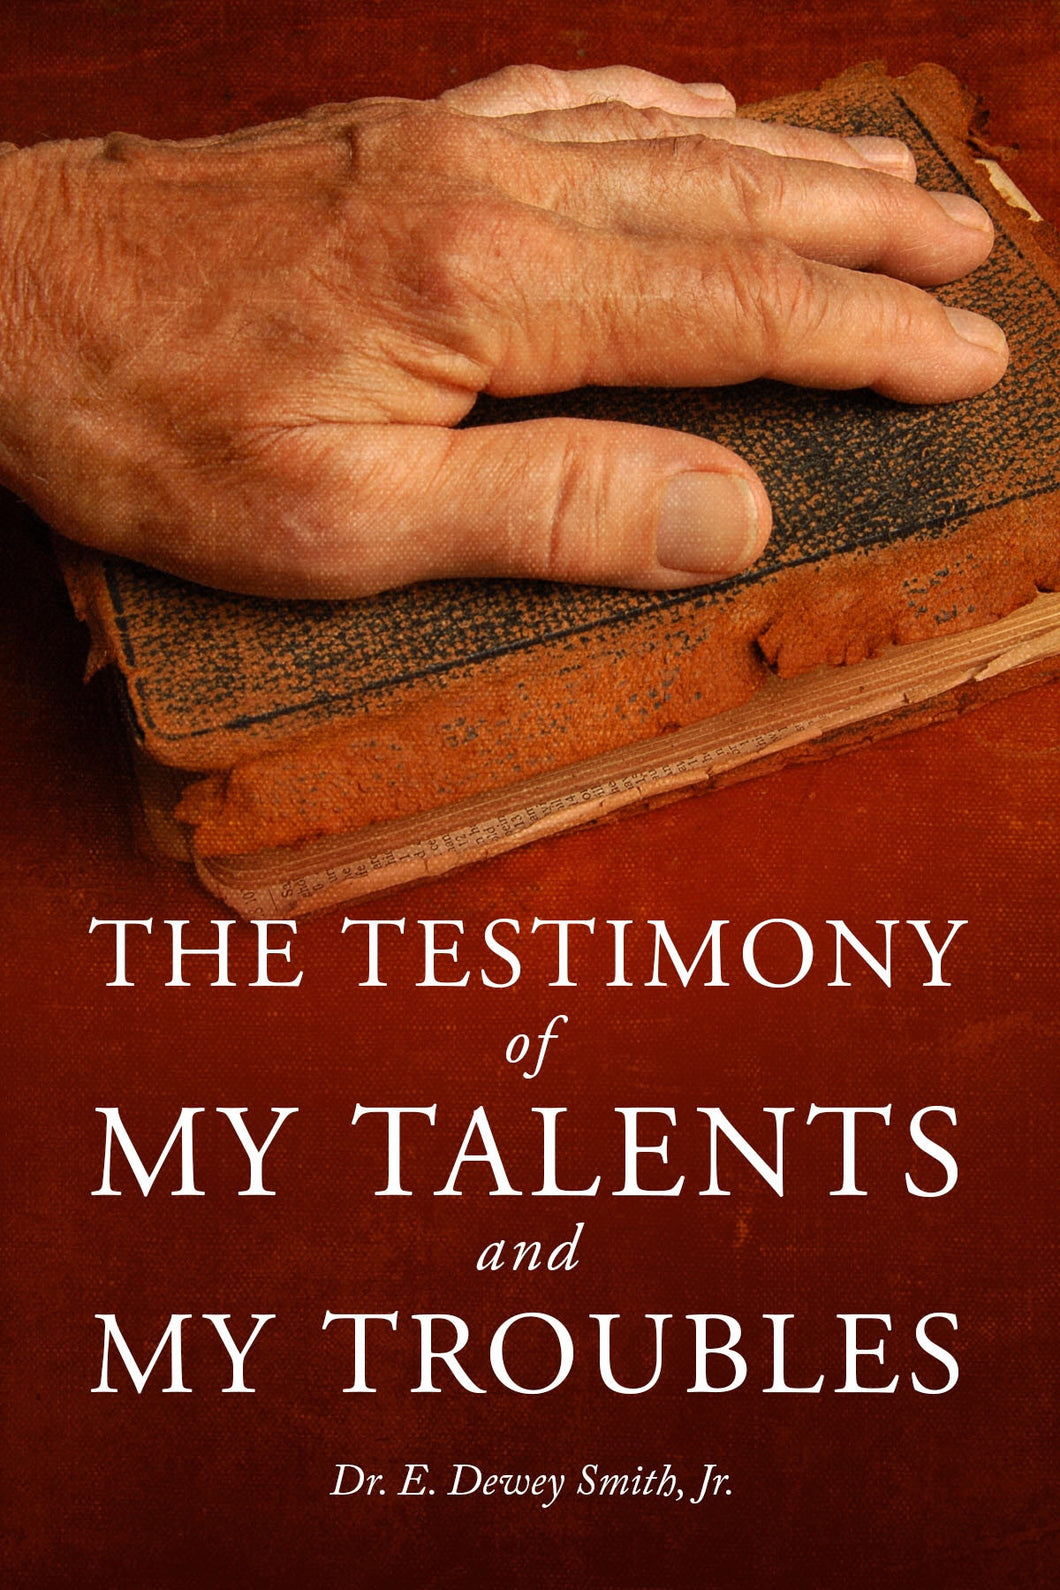 The Testimony of My Talents and My Troubles